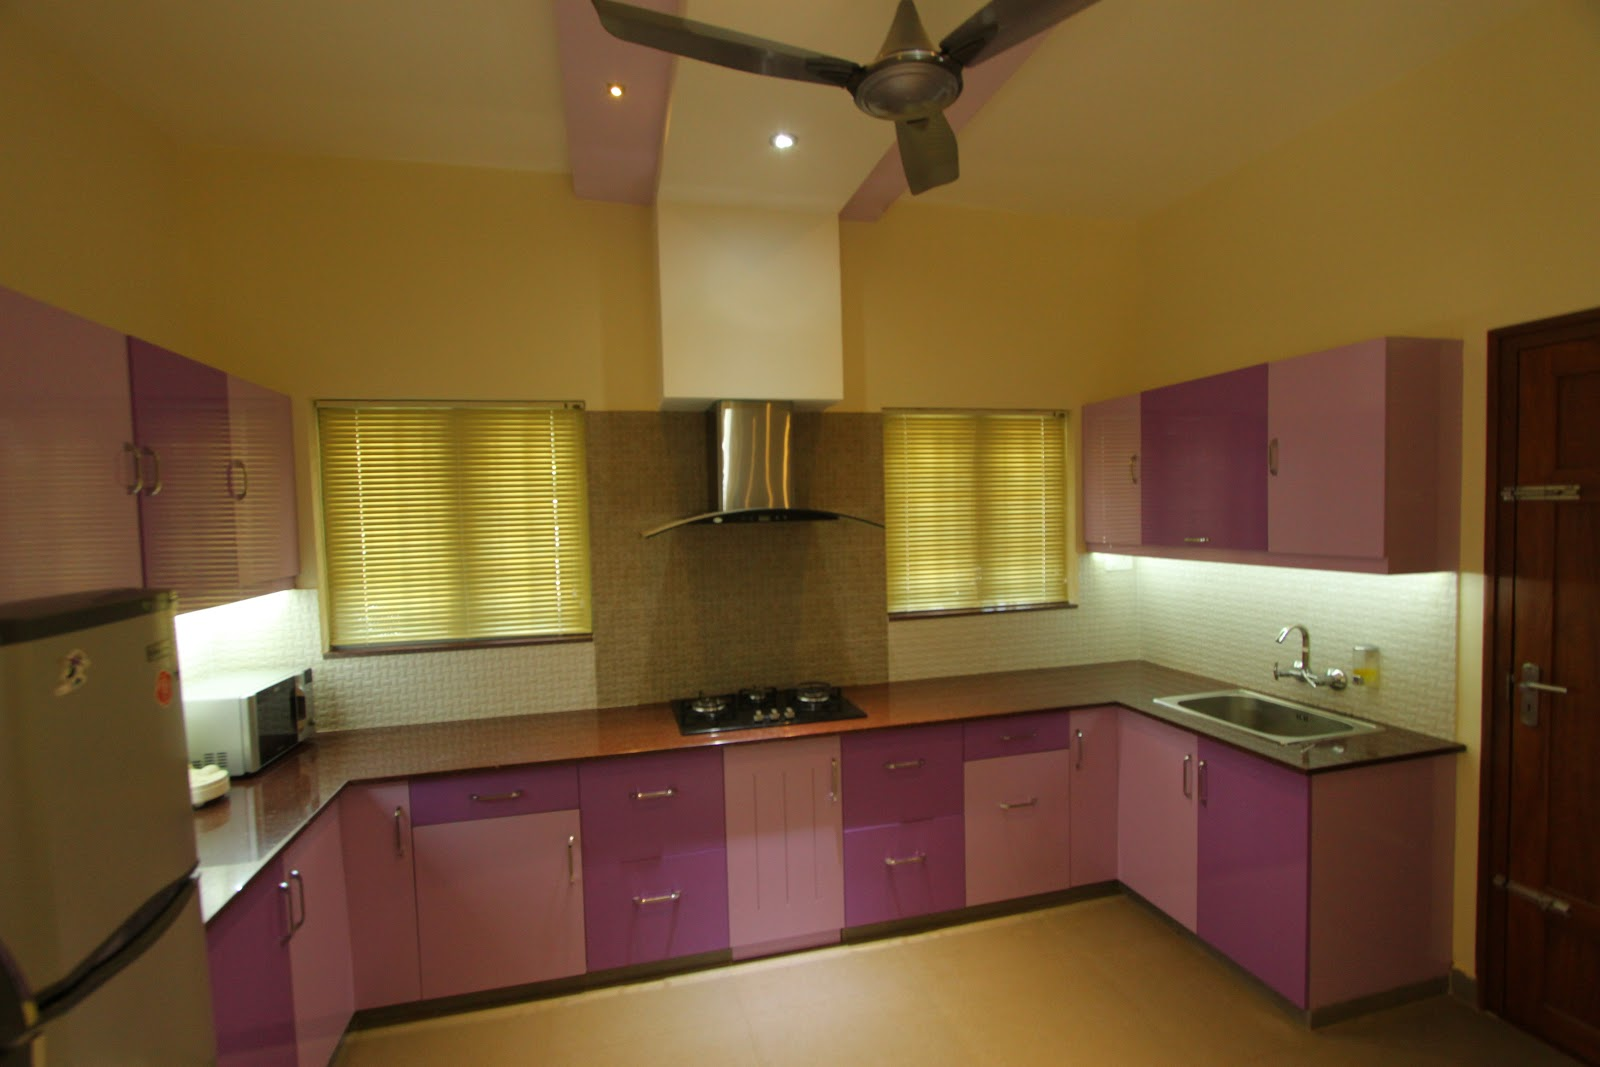 Shilpakala interiors award winning home interior design for Kerala style kitchen photos